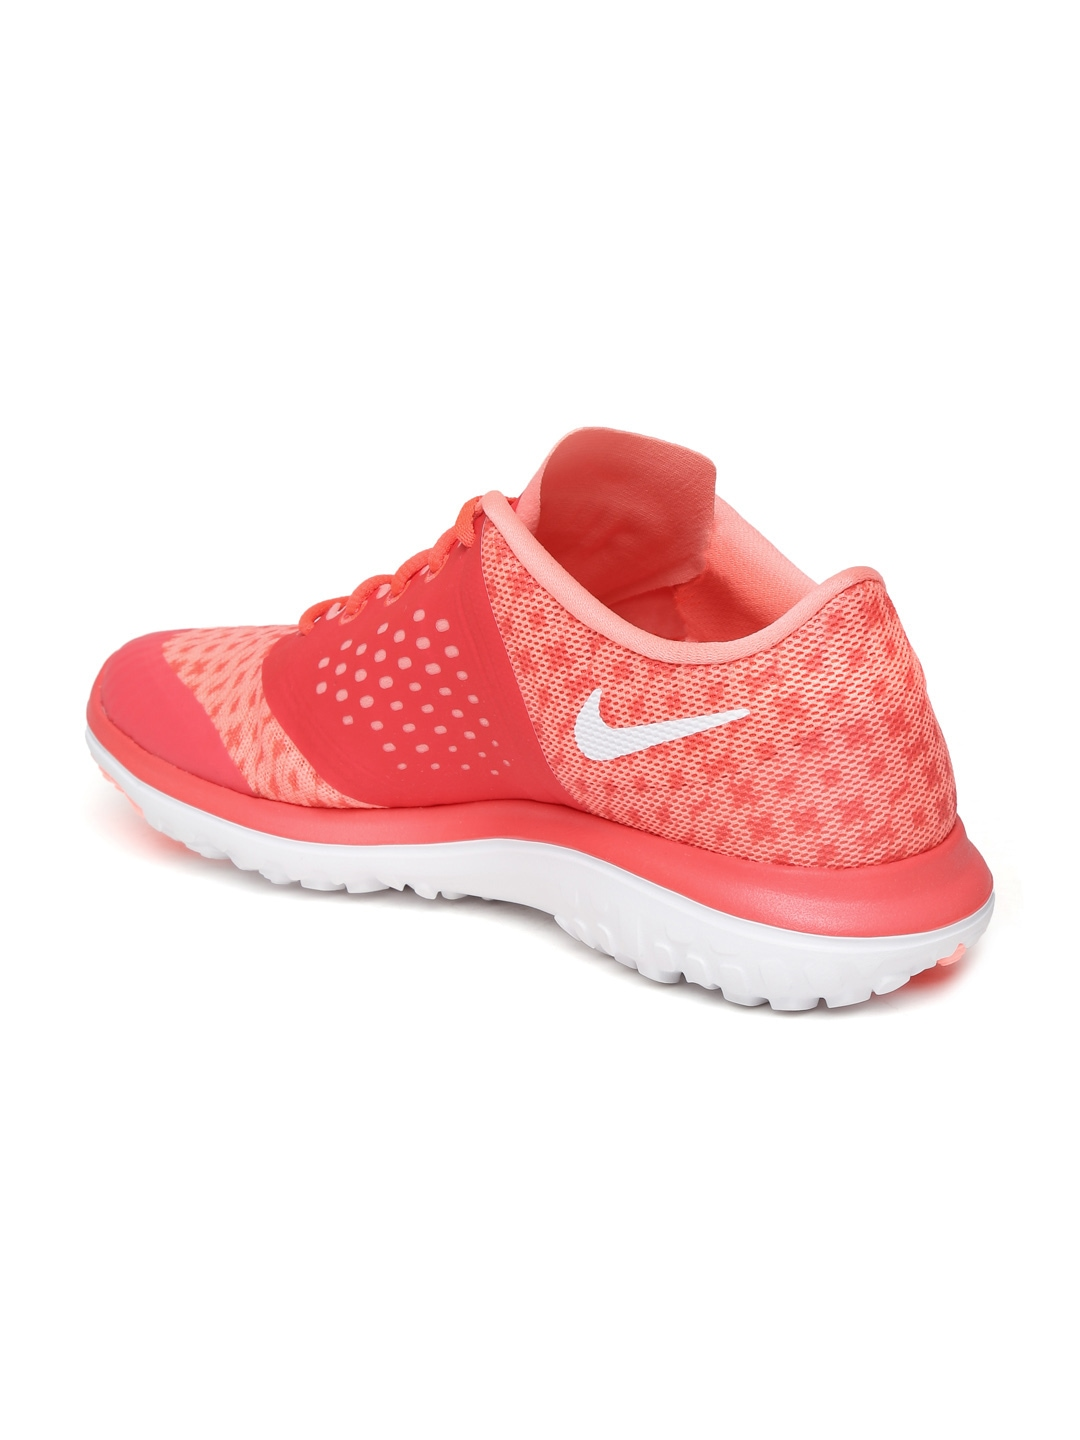 Excellent  Shoesnikeshoesnikerunningshoespinkneonnikeshoesfitnessjpg